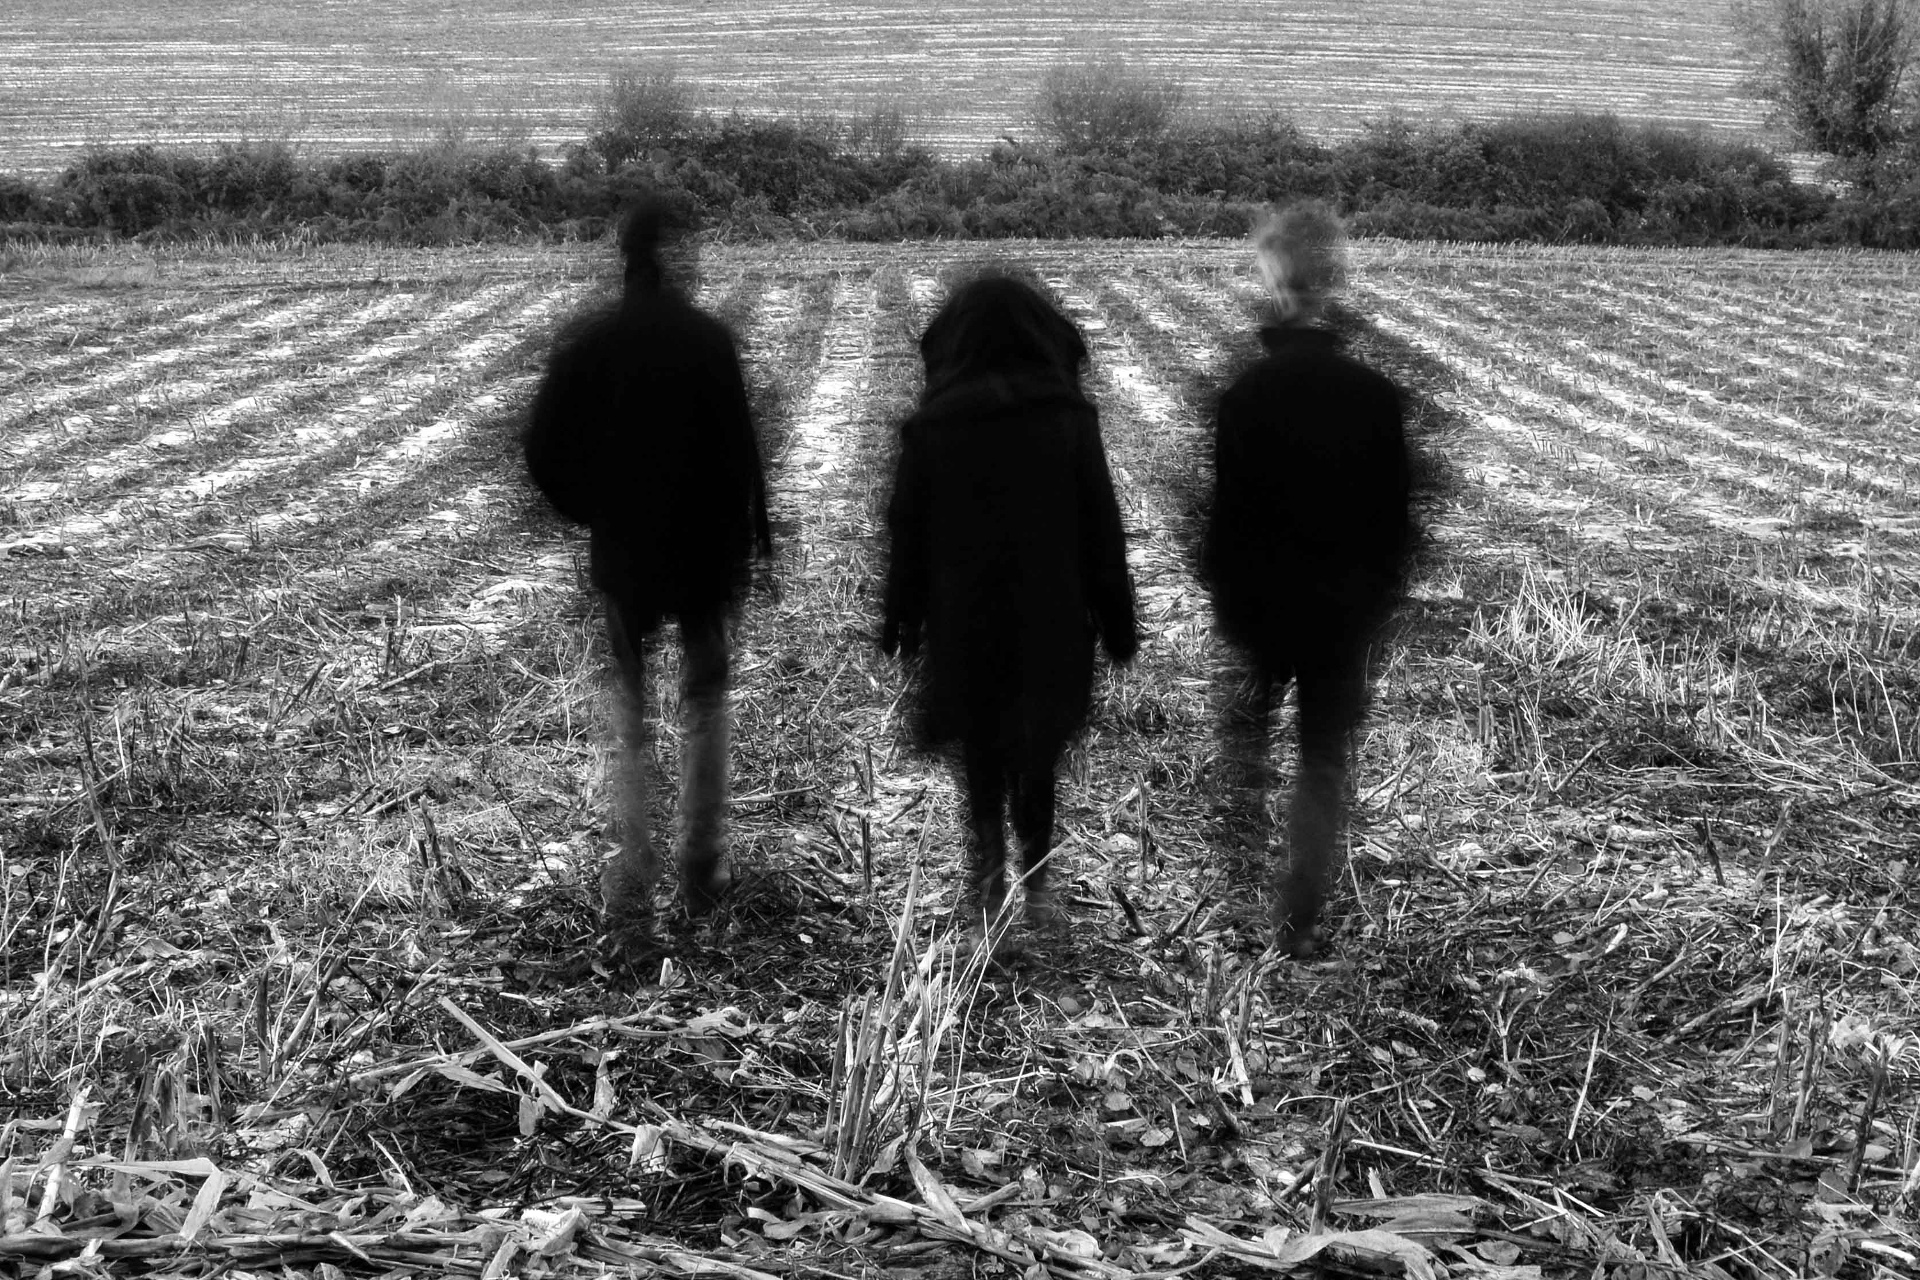 Second Moon Of Winter by Siobhan Russell, three musicians in a harvested field, backs turned